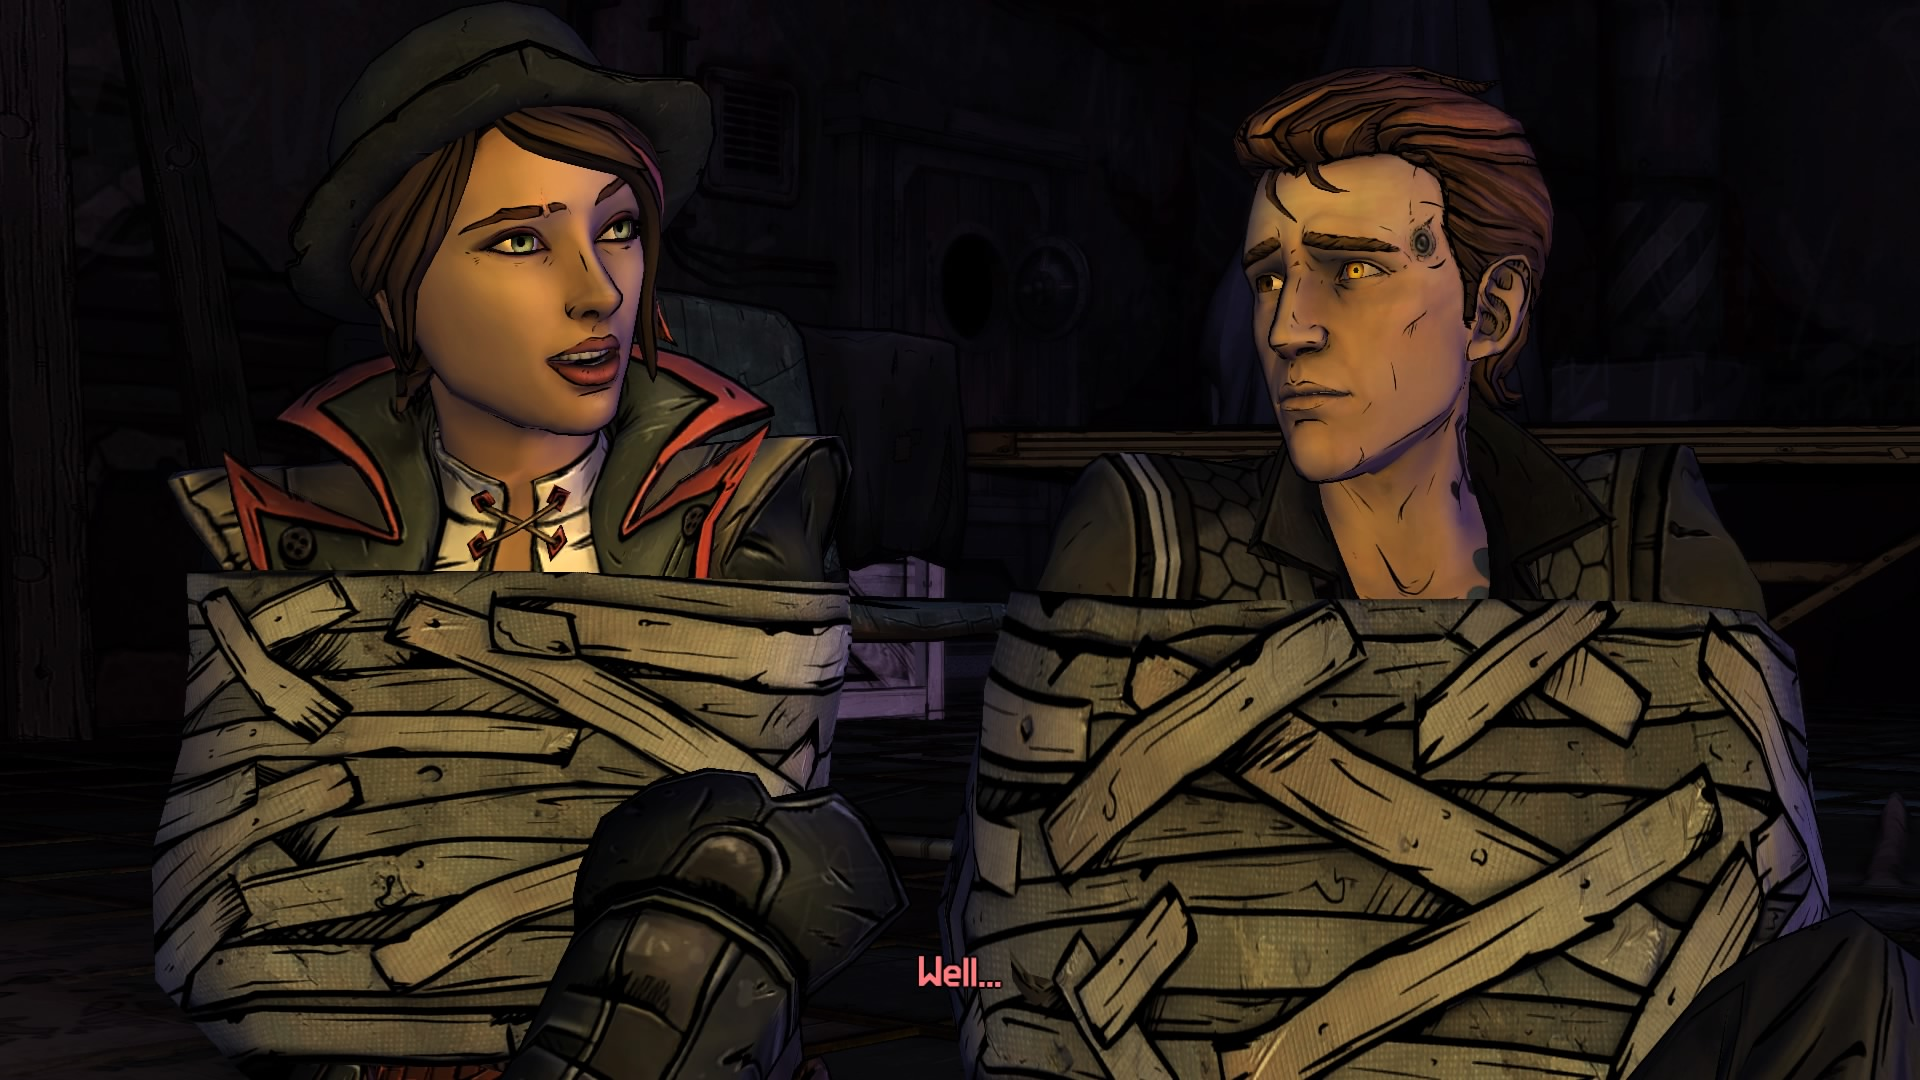 Fiona and Rhys, the two characters you play as throughout the game.